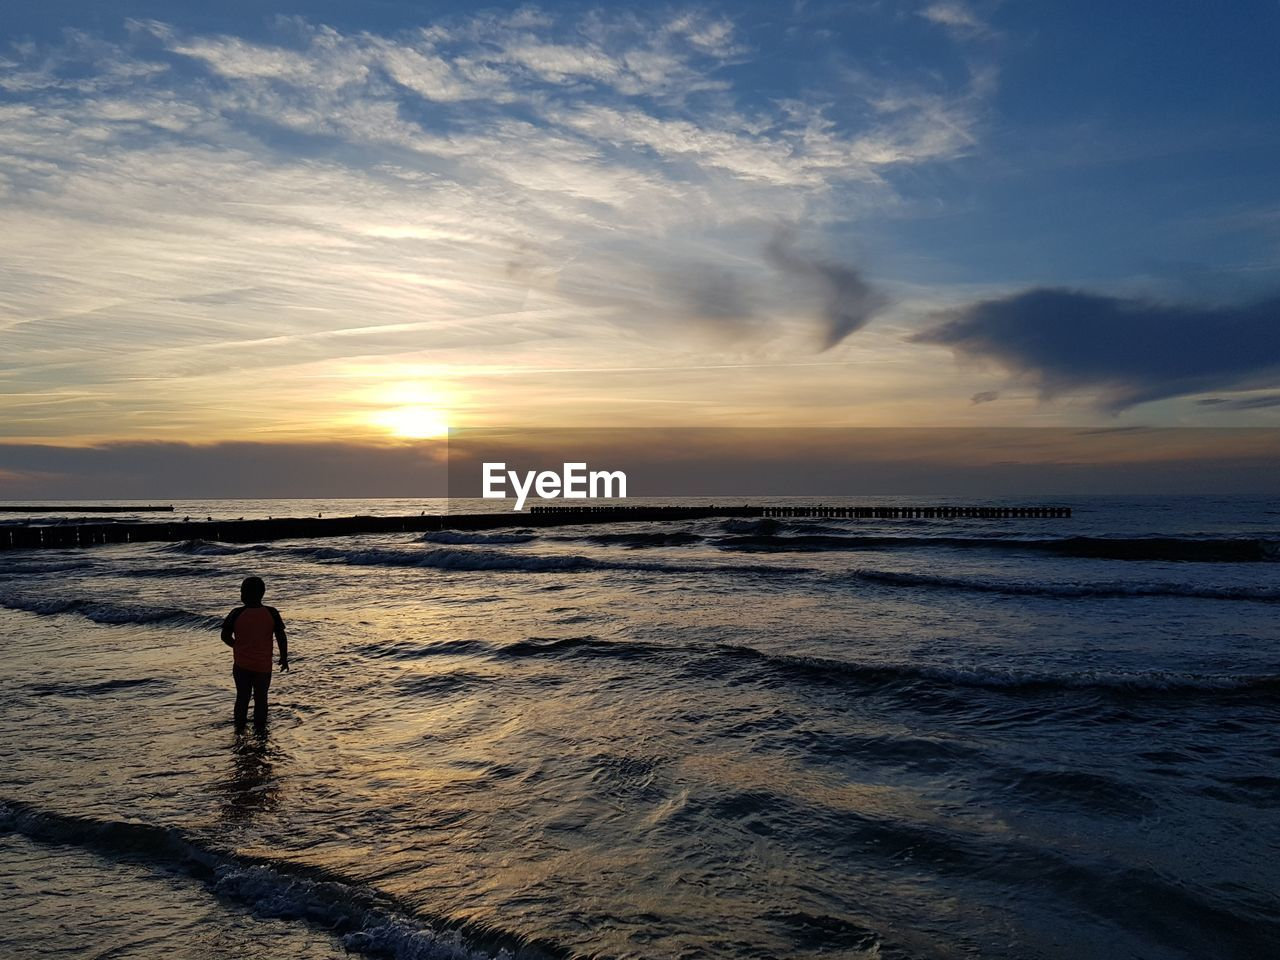 sky, water, sea, sunset, beach, beauty in nature, land, horizon over water, scenics - nature, real people, cloud - sky, horizon, lifestyles, one person, motion, men, leisure activity, nature, outdoors